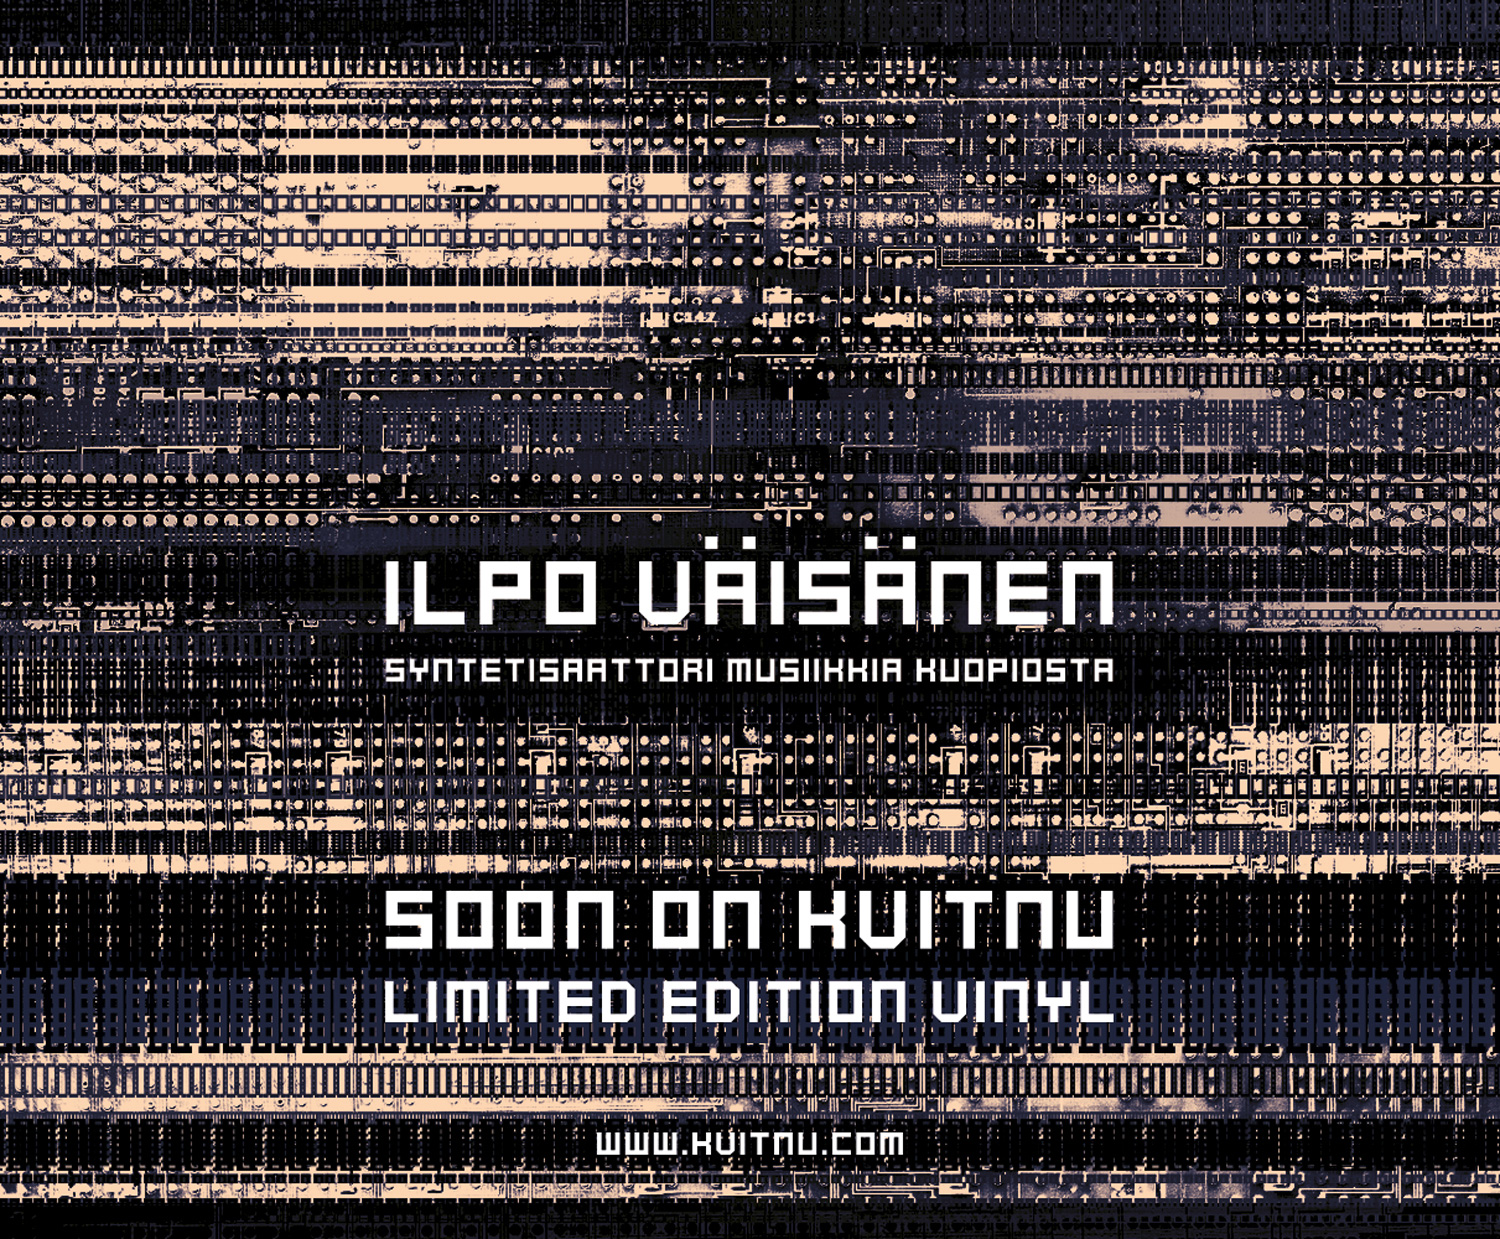 ilpo vaisanen on kvitnu soon